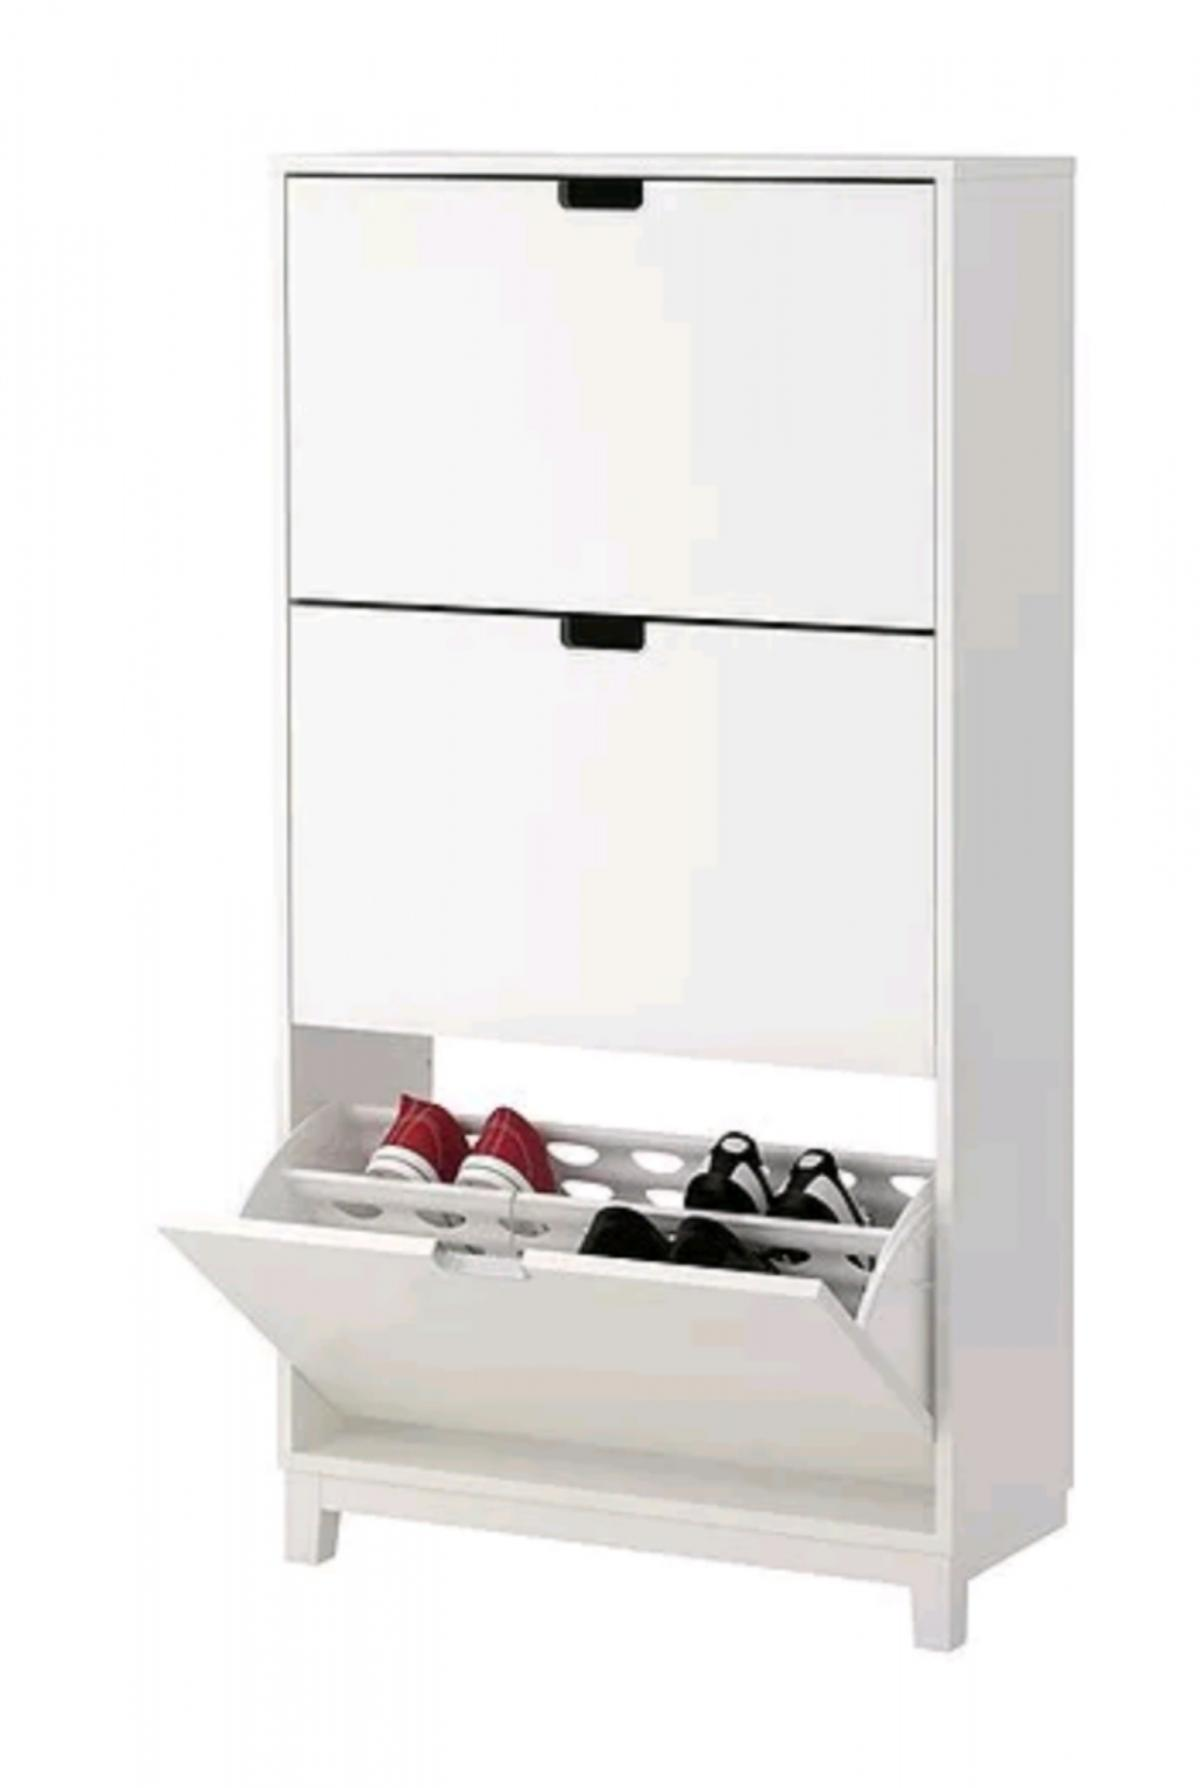 Ikea Shoe Storage Cabinet In Bs4 Bristol For 45 00 For Sale